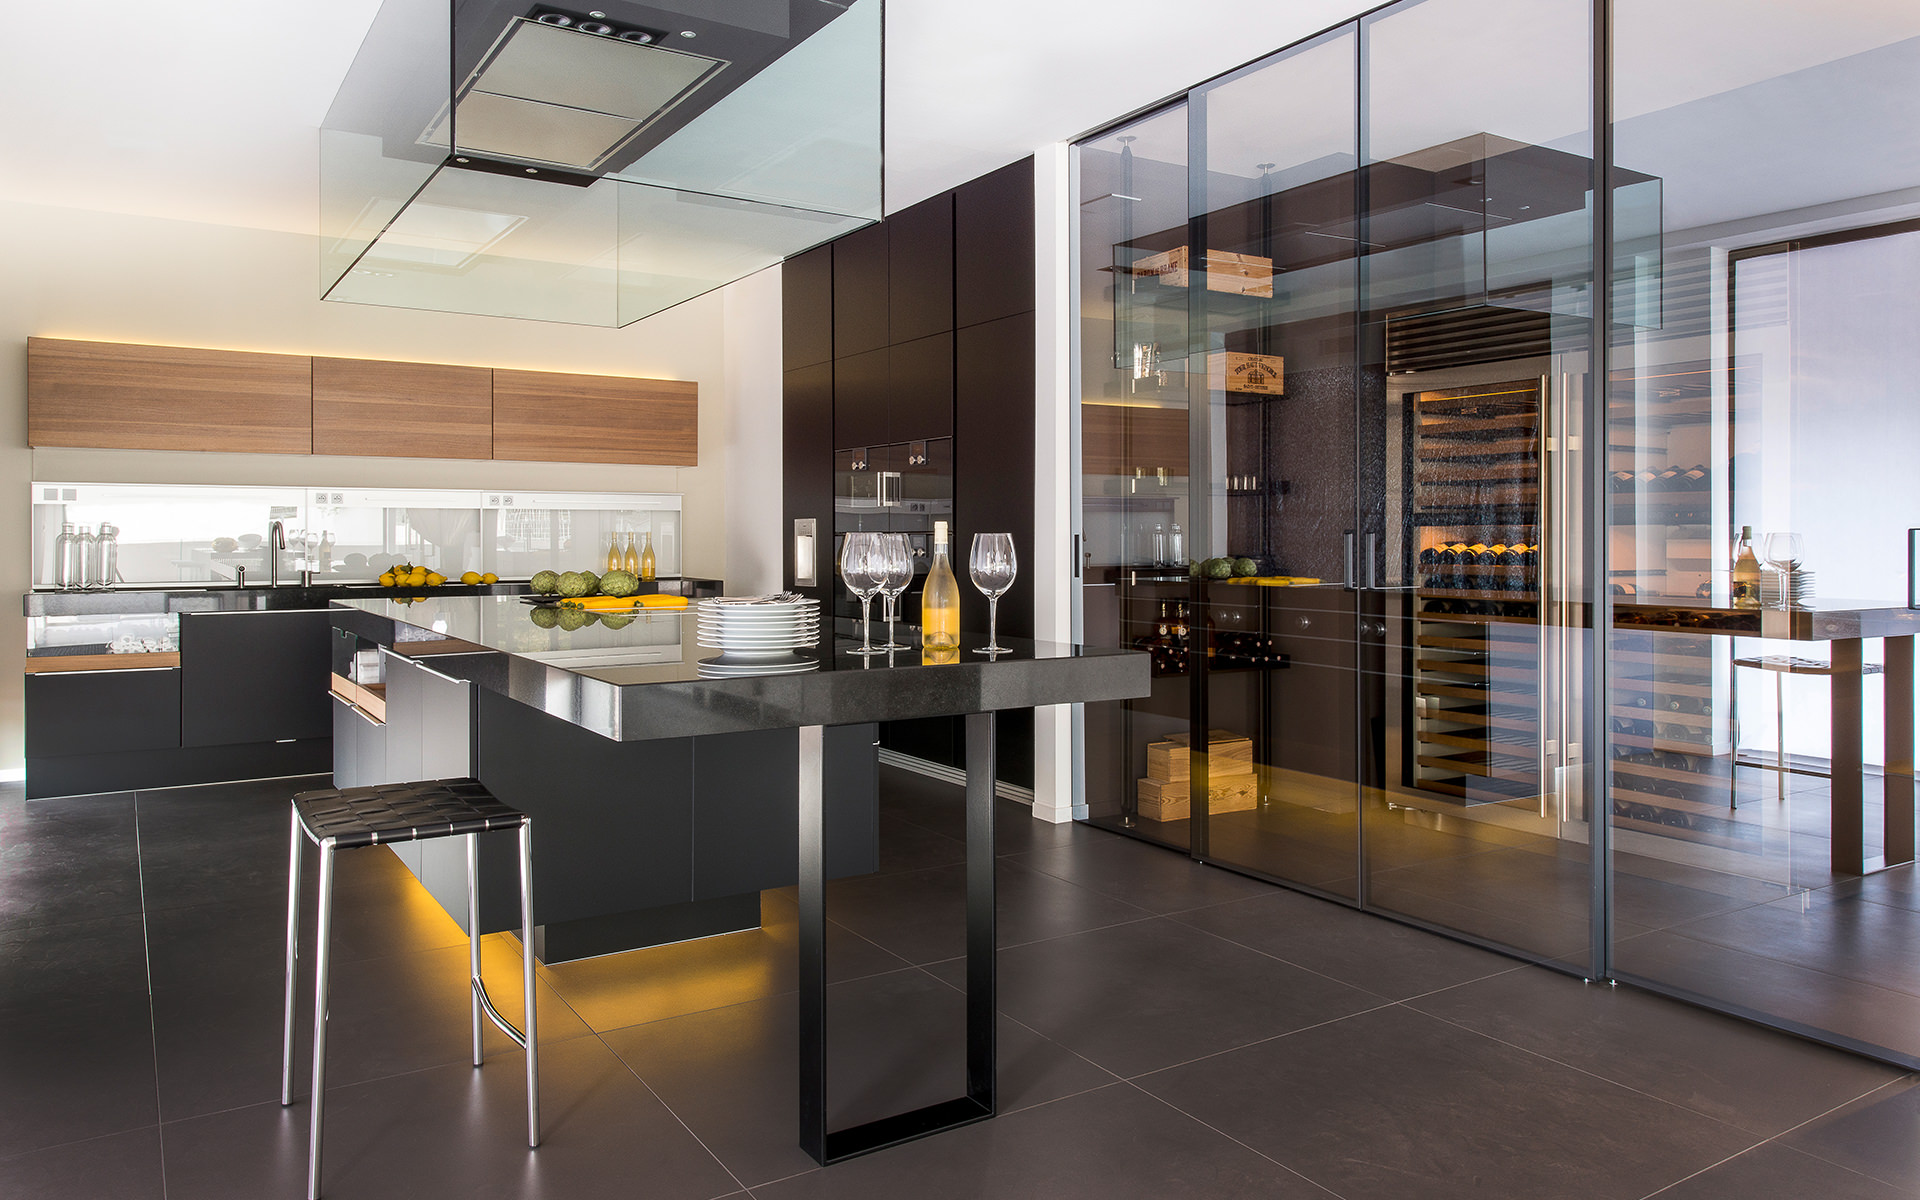 Showroom cuisine design minimaliste allemand et italien for Showroom cuisine